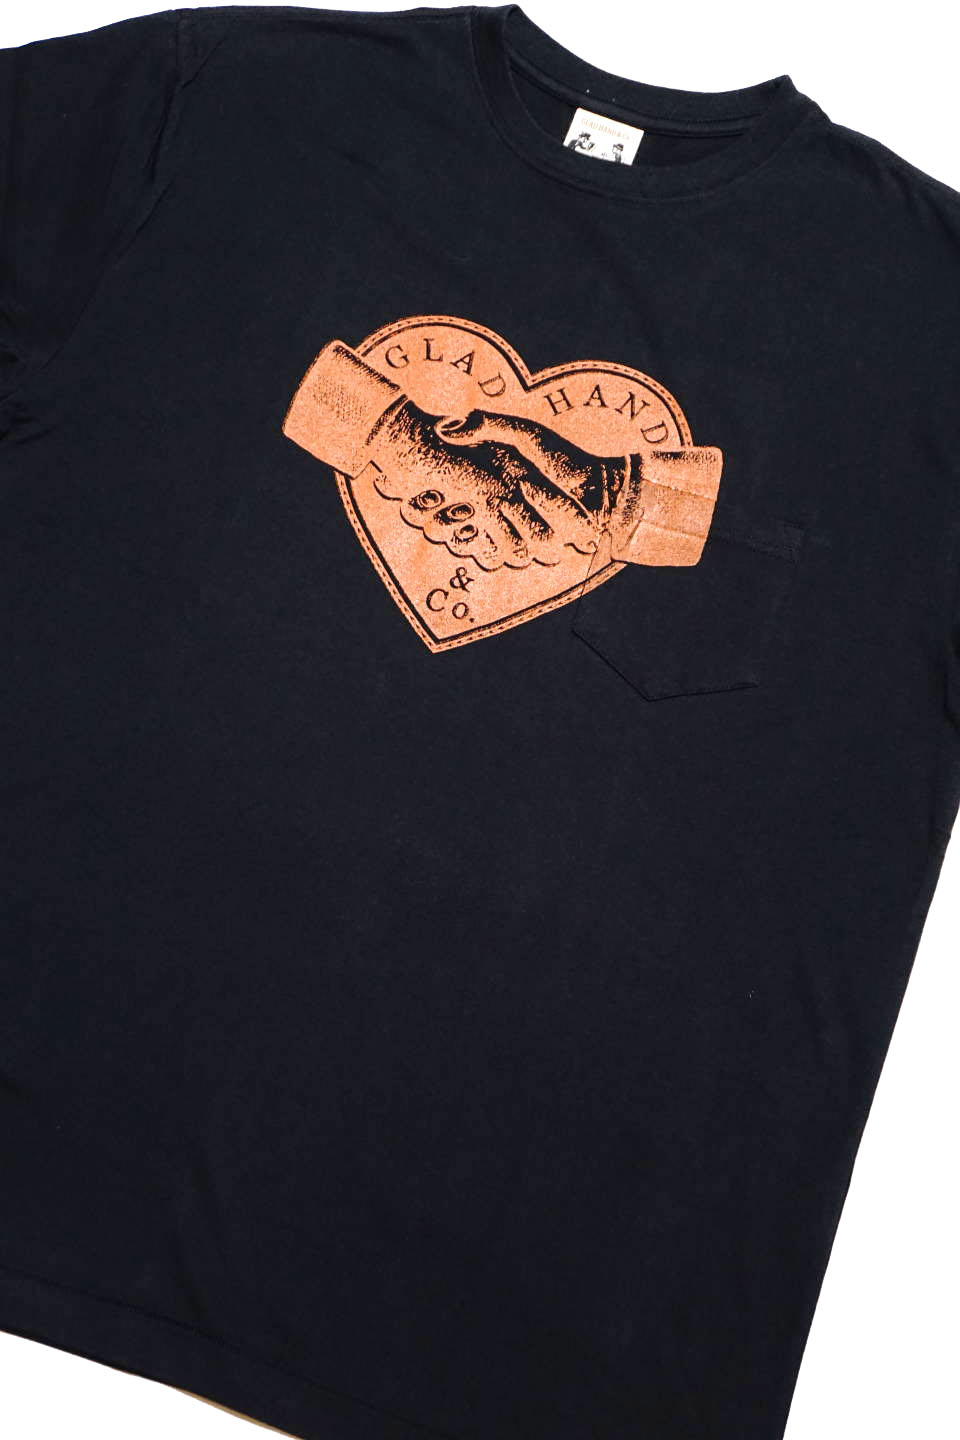 GLAD HAND HEARTLAND - S/S T-SHIRTS BLACK